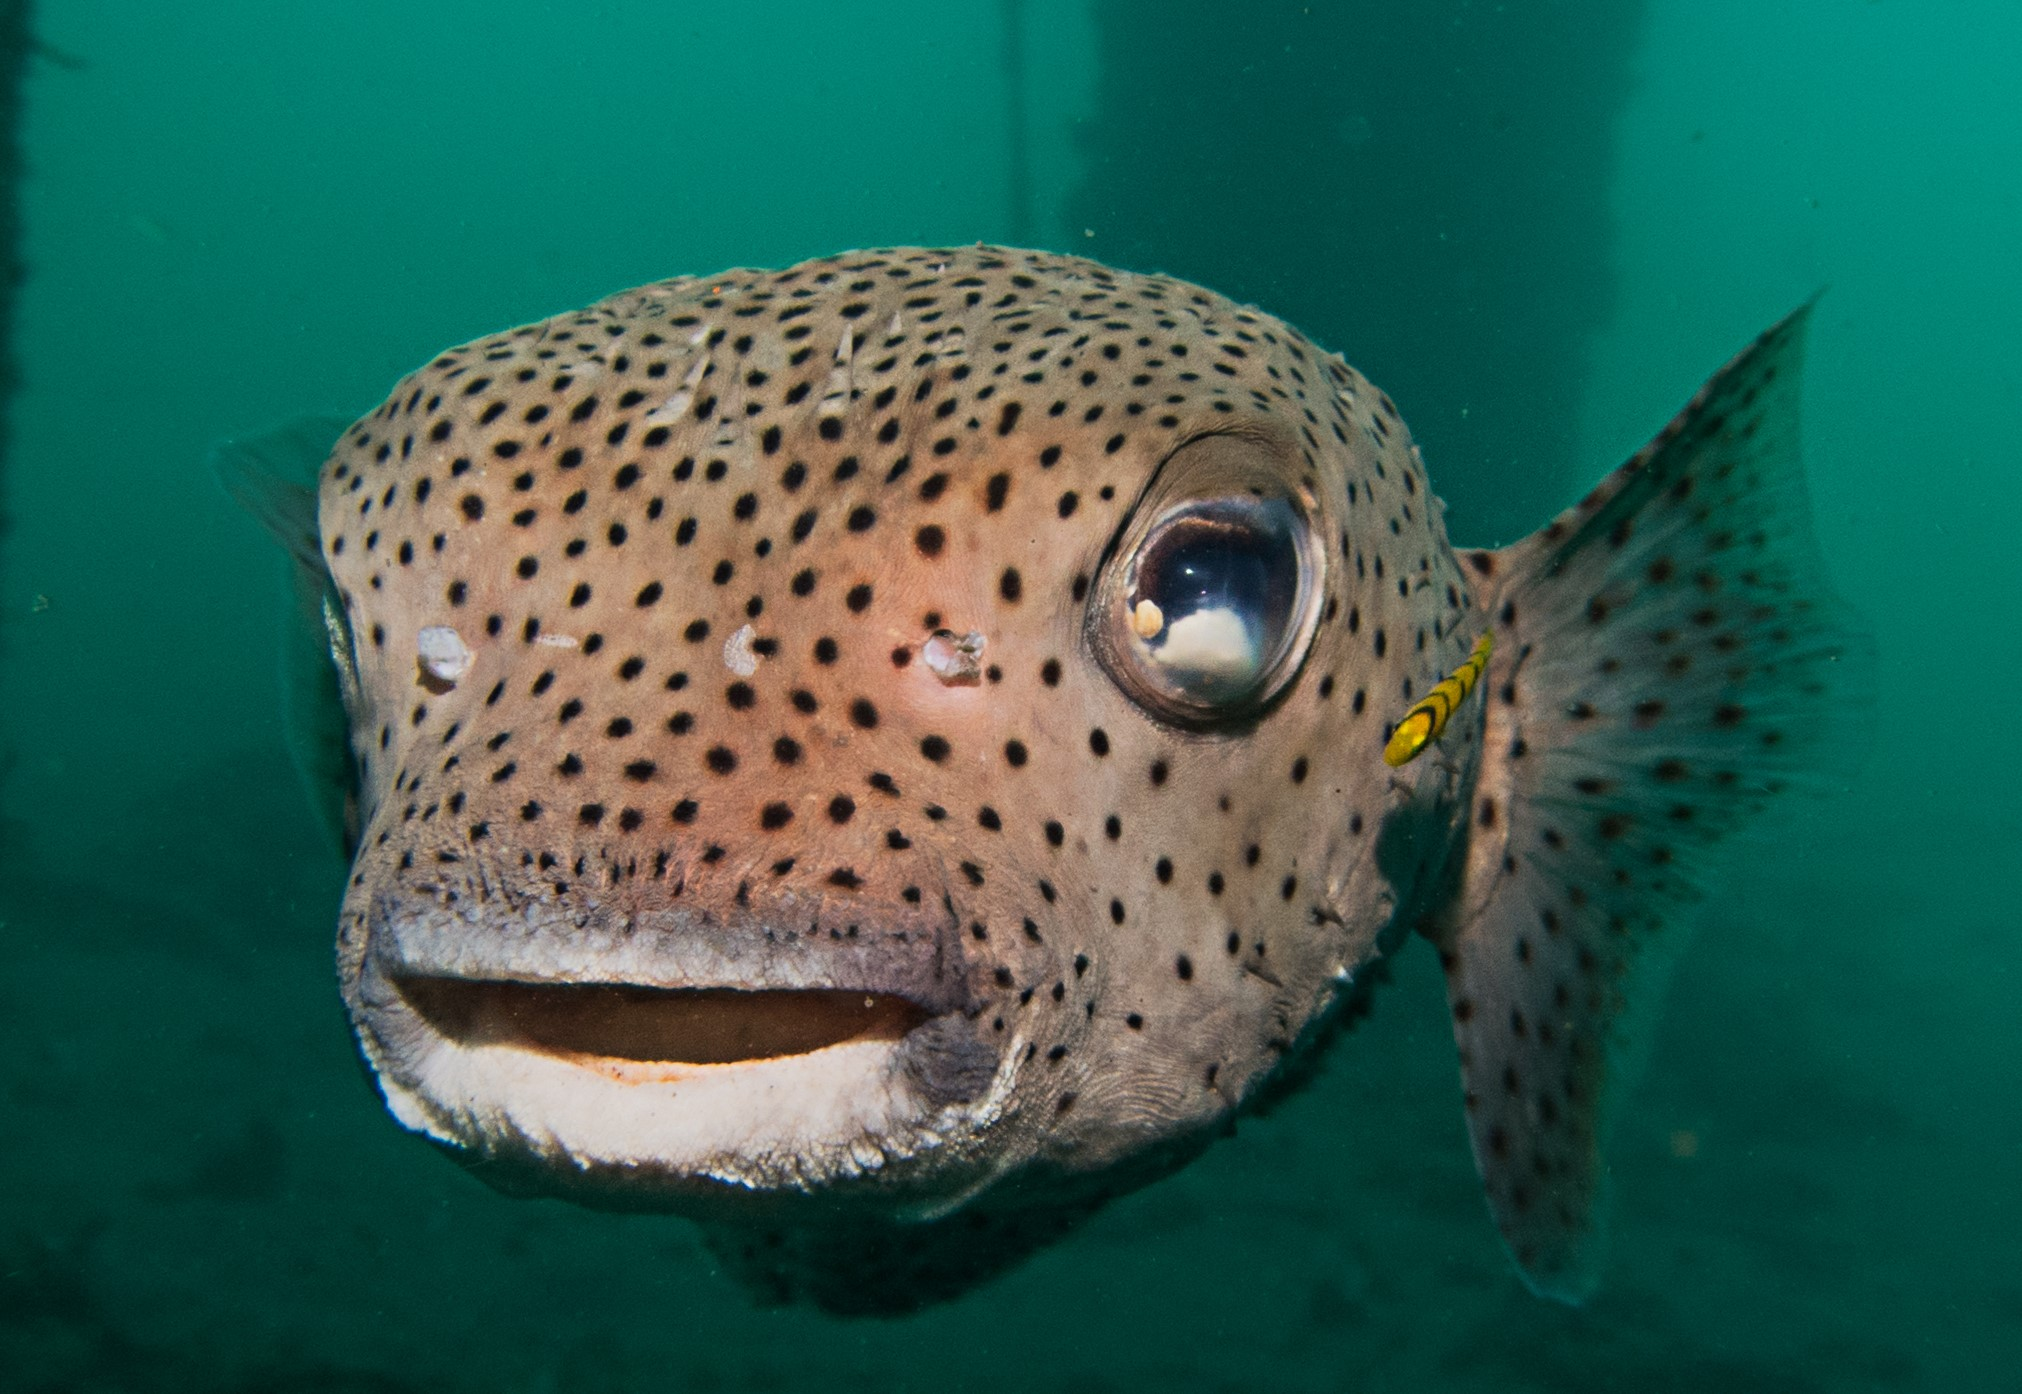 Porcupine-fish-looking-directly-at-the-camera